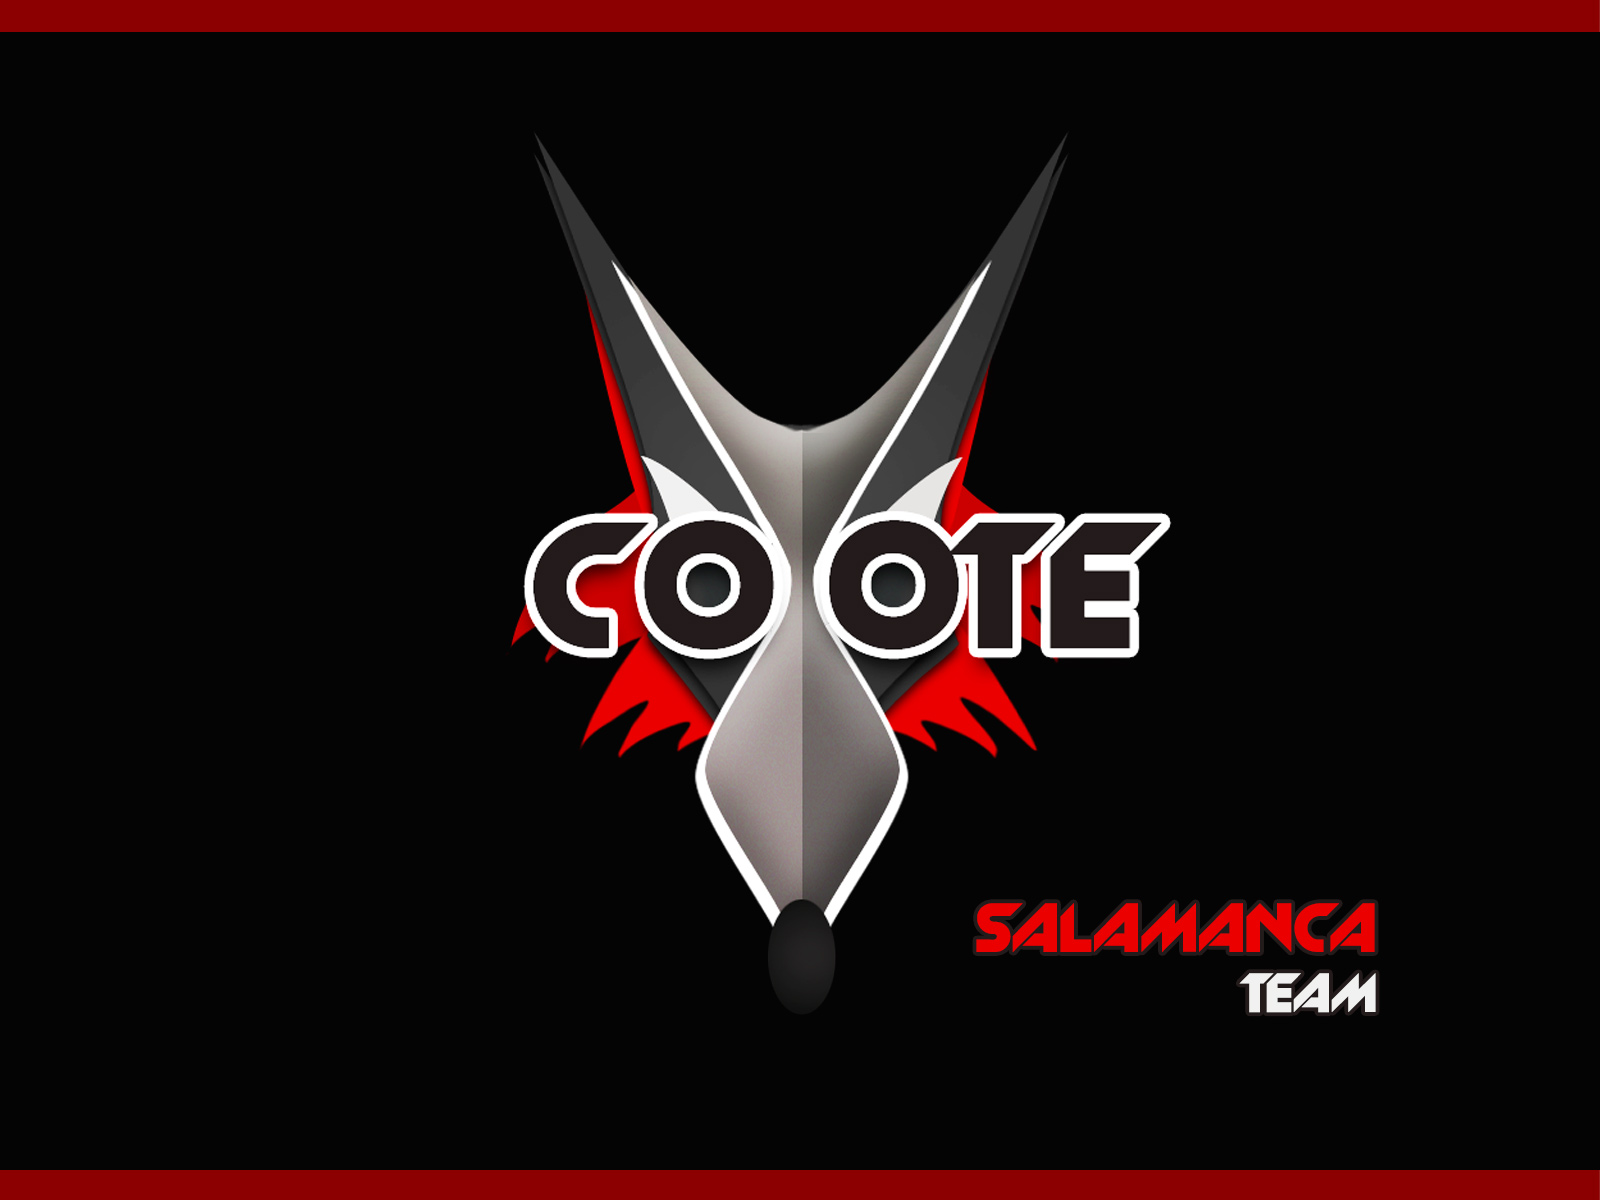 COYOTE SALAMANCA TEAM